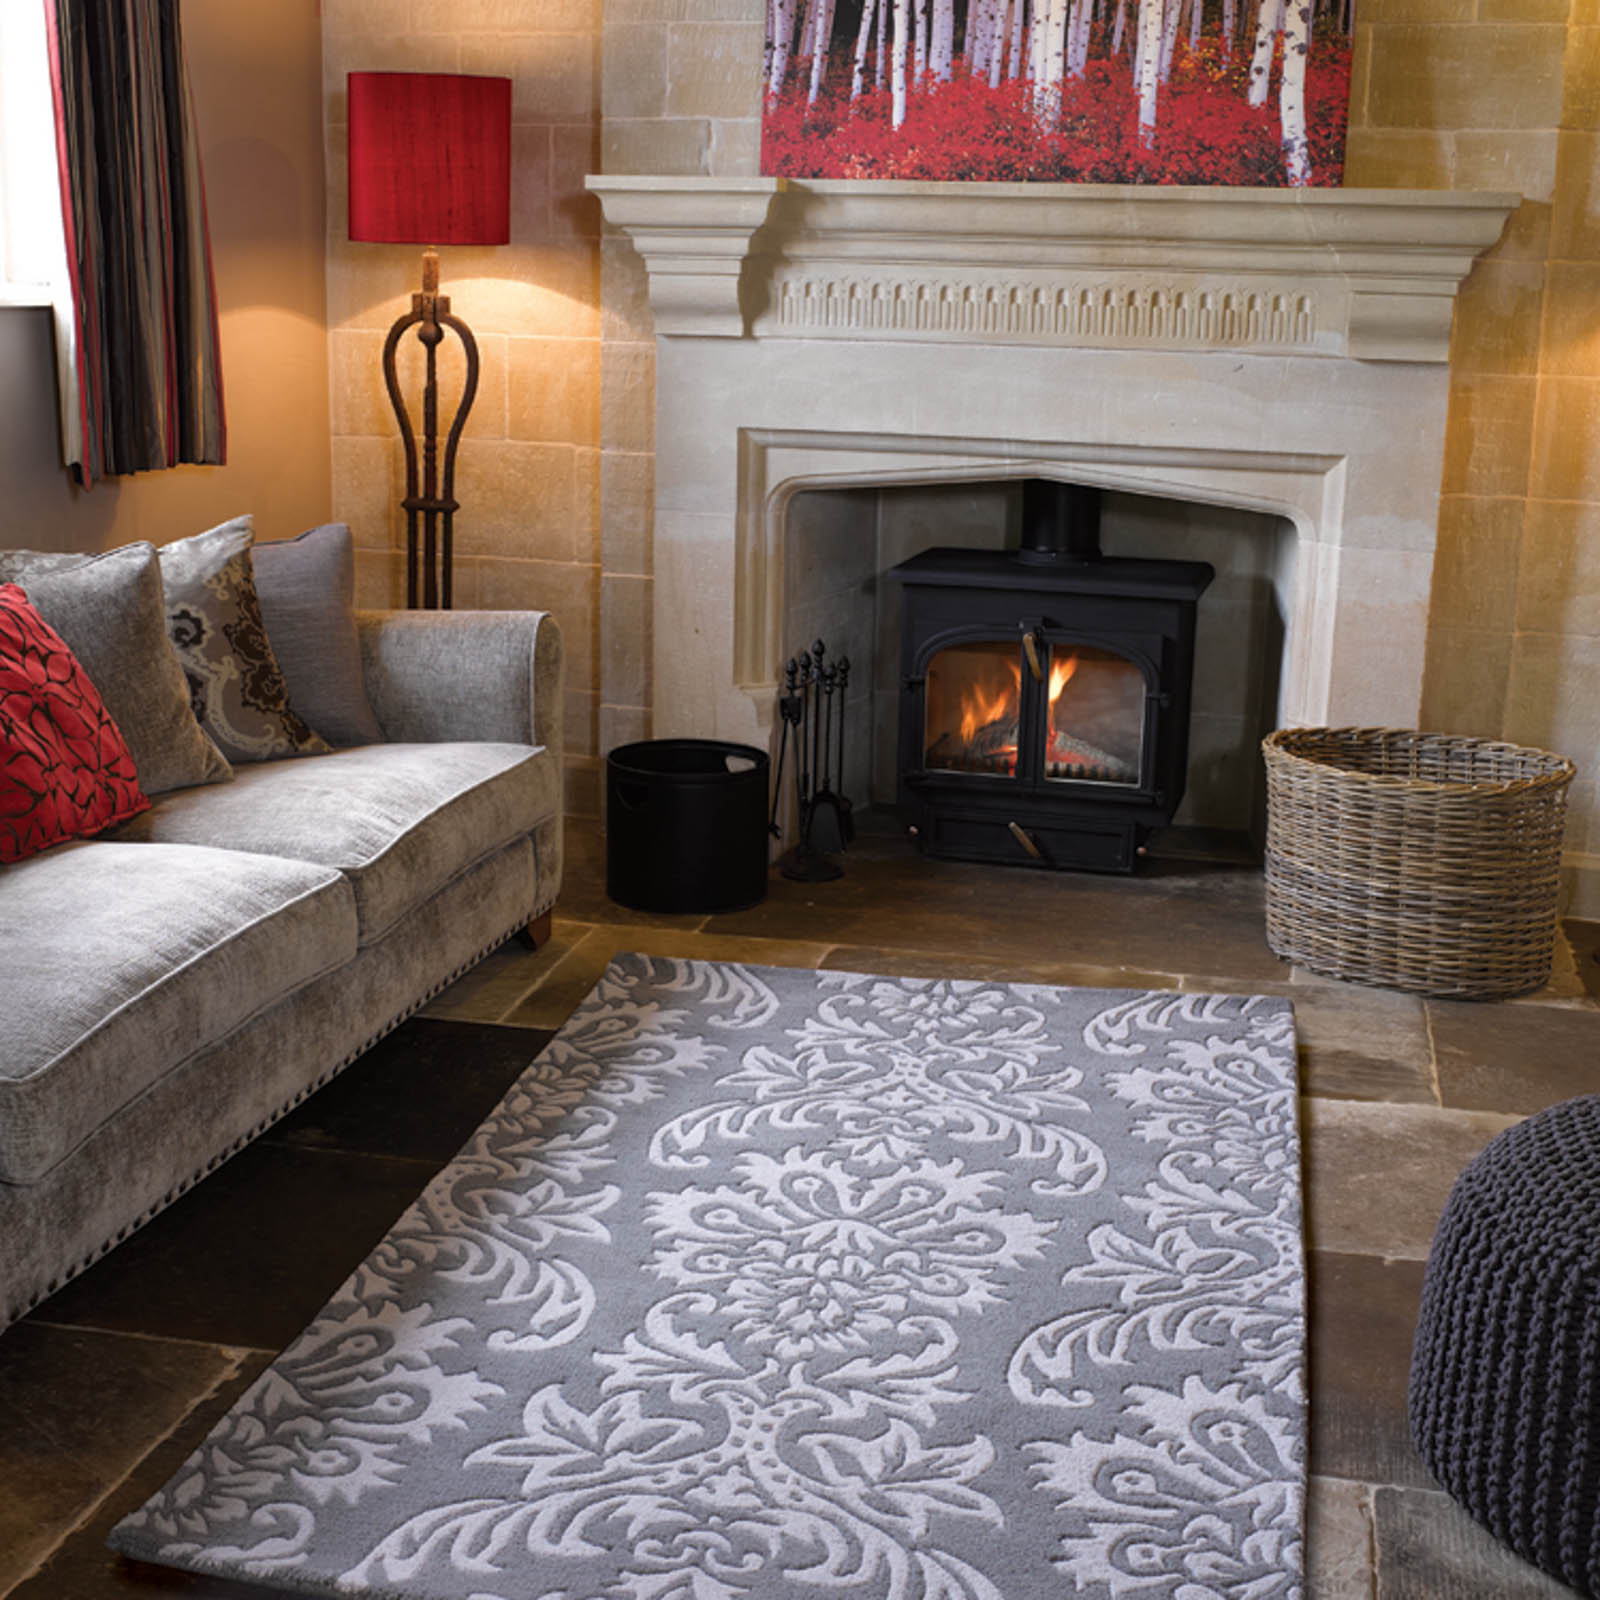 Decotex Ornate Rugs in Grey